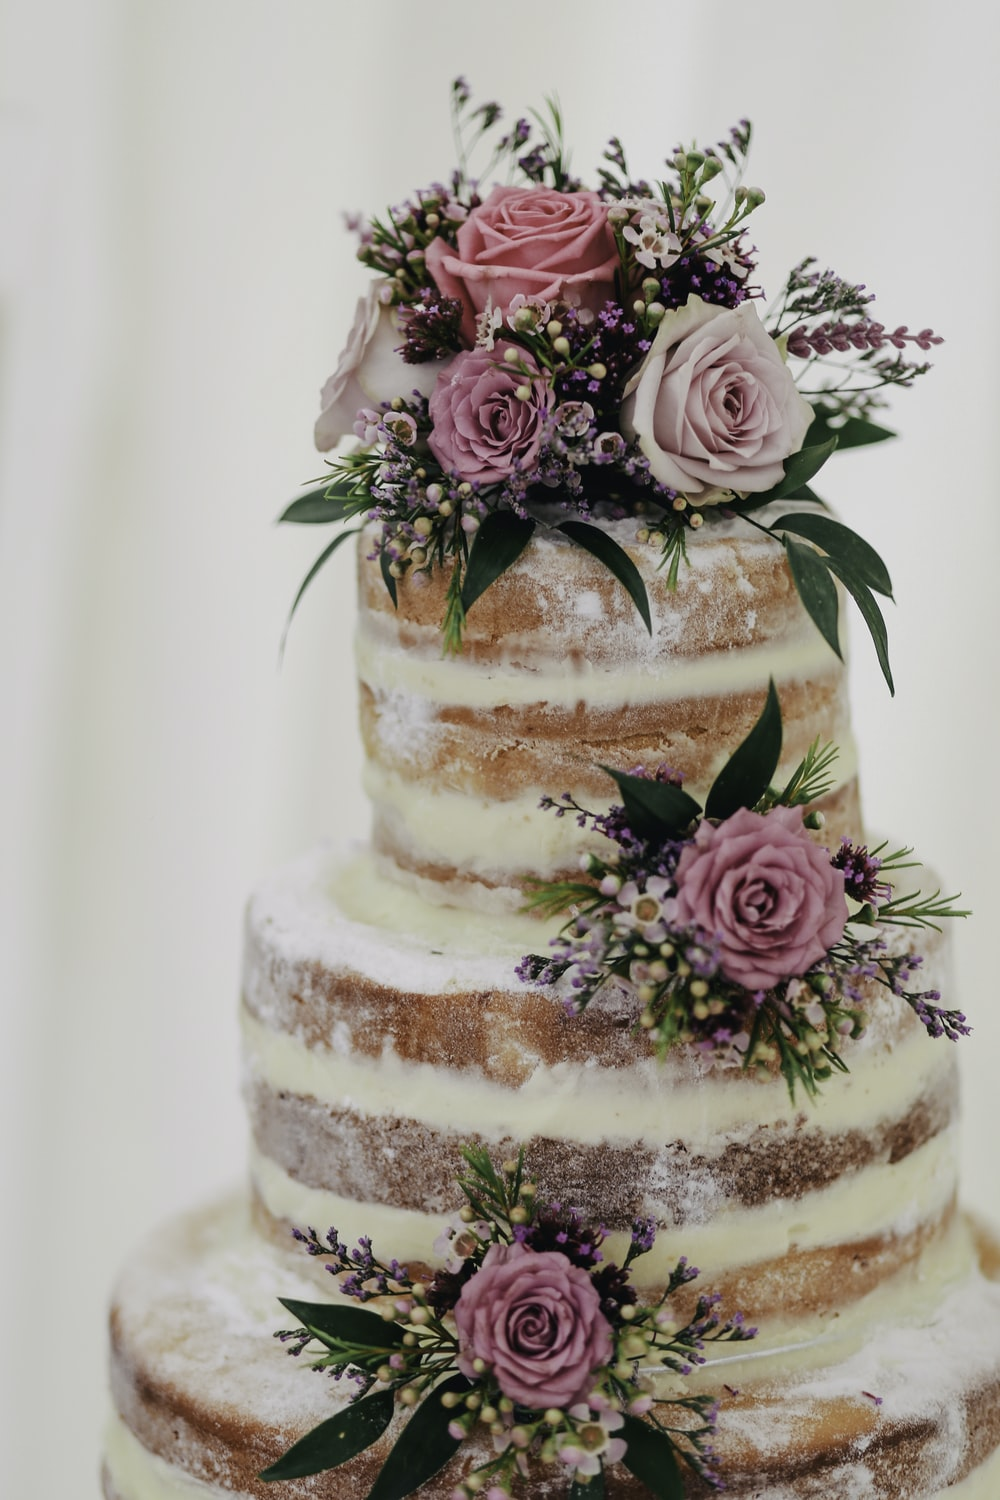 Wedding cake pictures download free images on unsplash junglespirit Choice Image